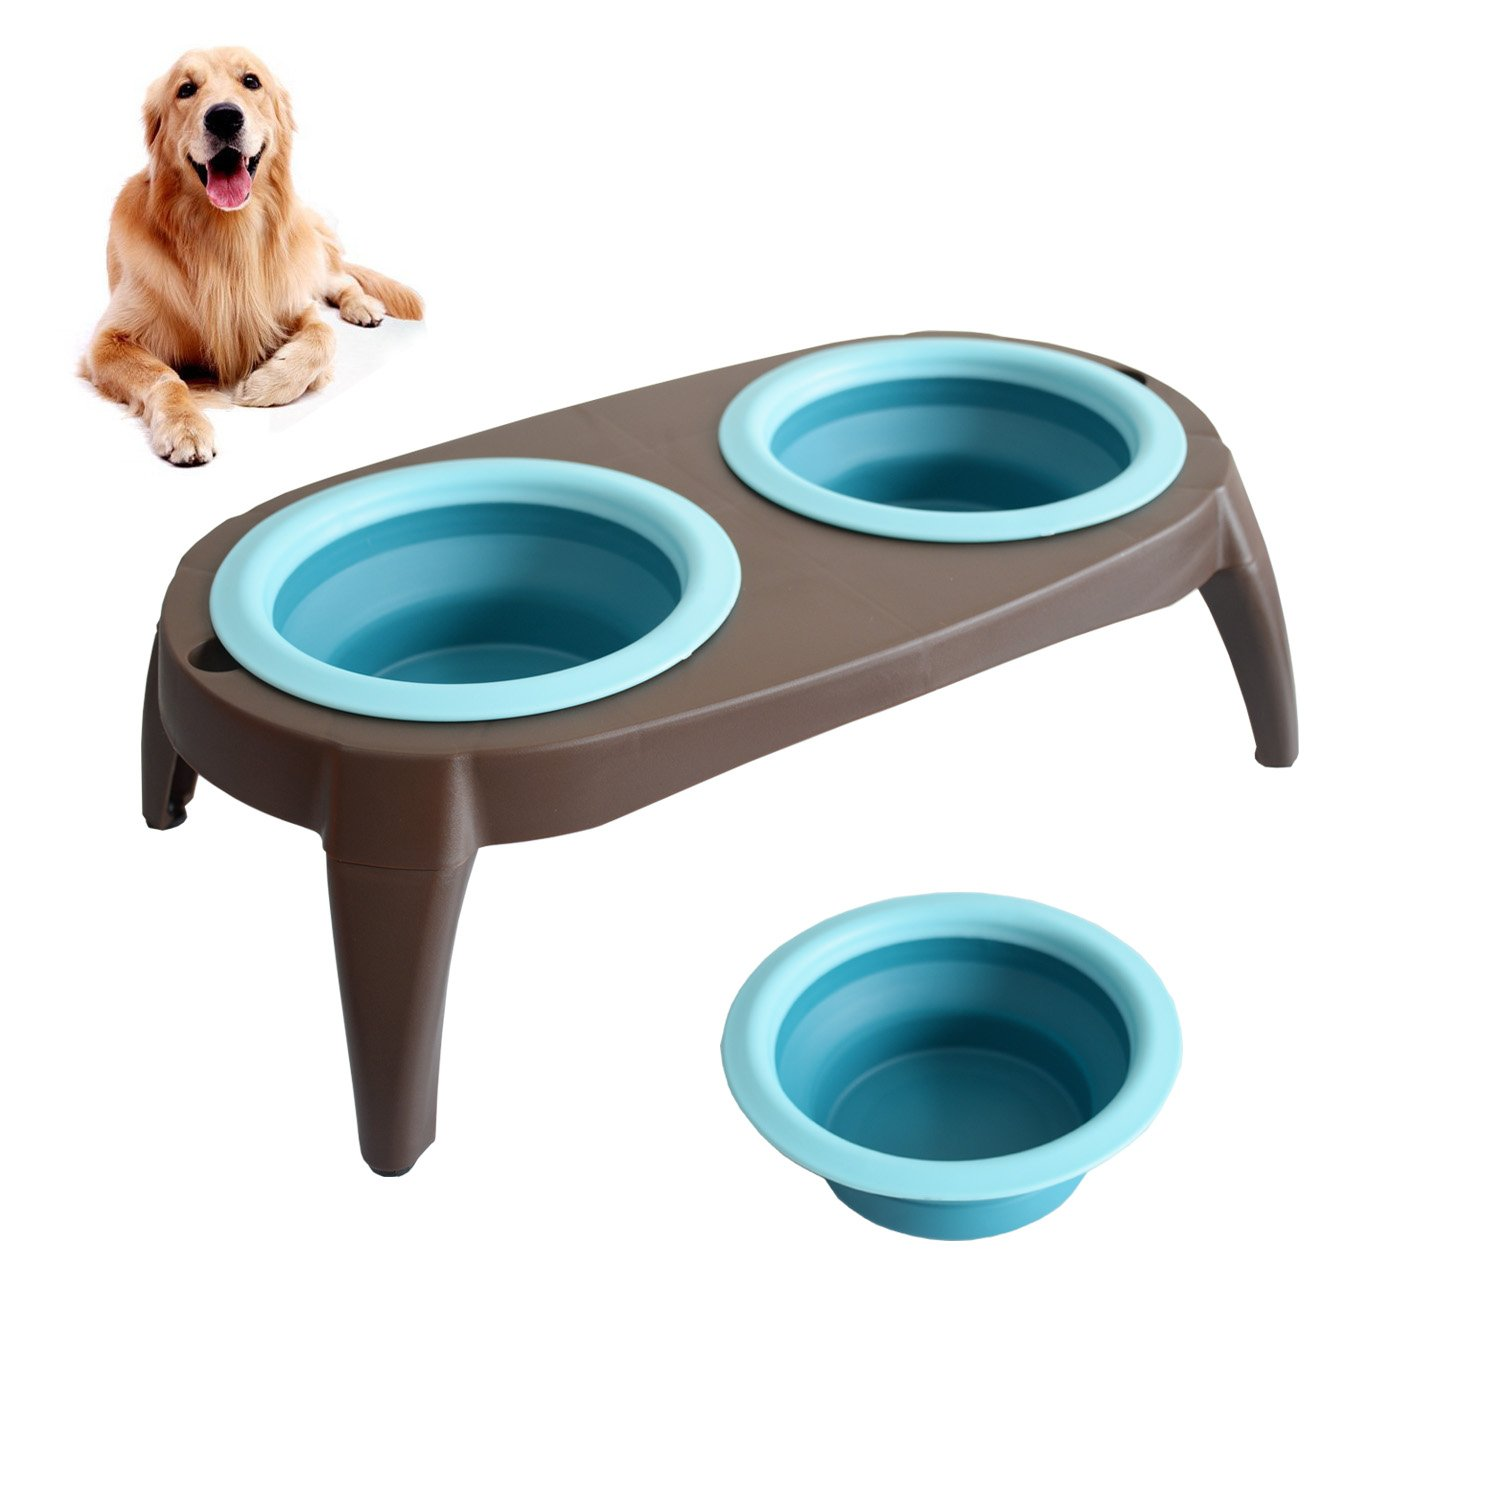 Elevated Dog Bowls Collapsible Pet Feeder Bowls Travel Double Cup Dish Dog Bowl Washable, Non Corrosive Rust Proof Raised Dog Feeding Station with Non Slip Stand Removable Pet Bowls